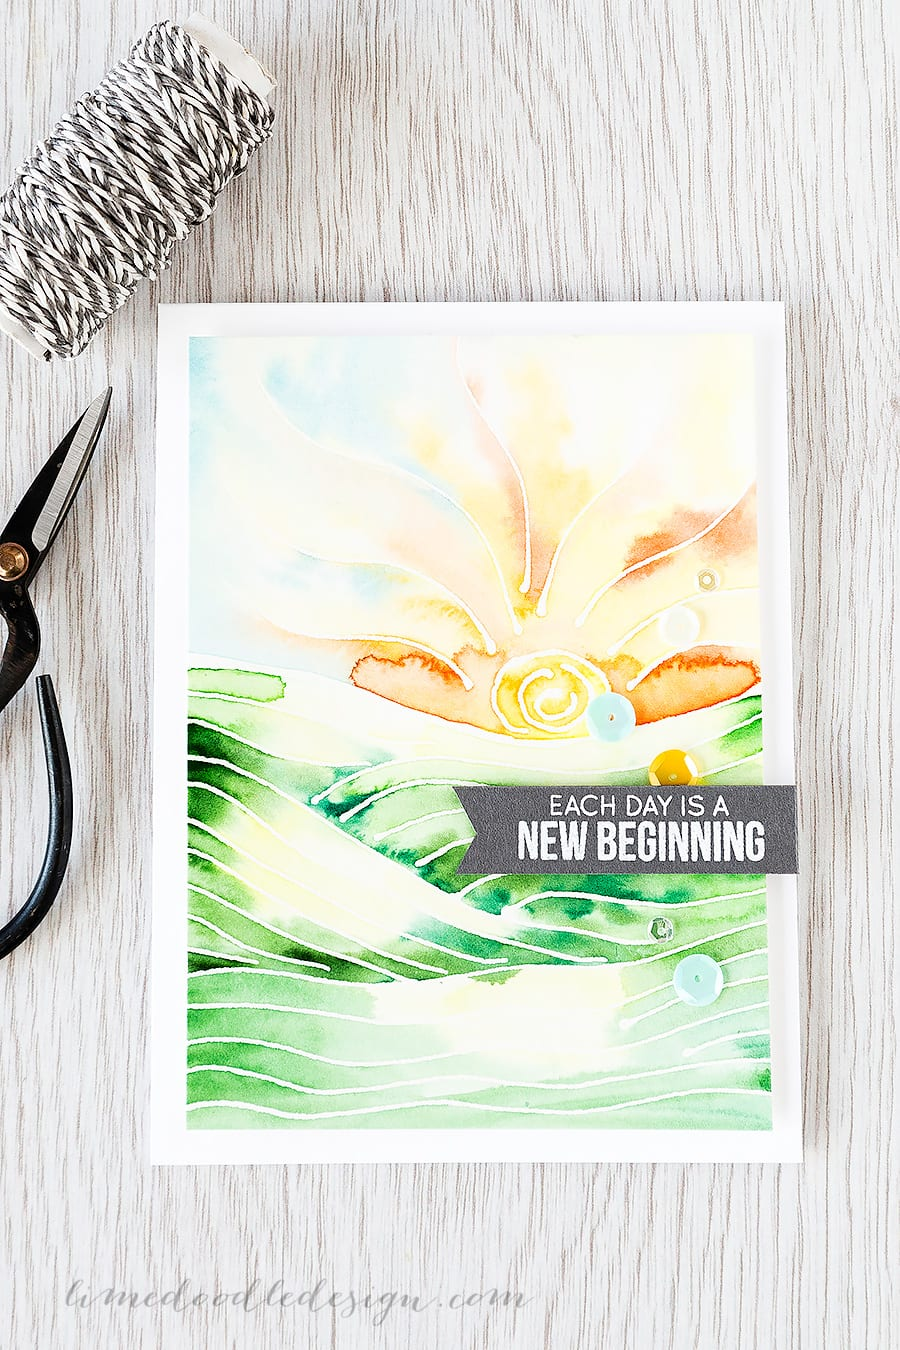 drawing with masking fluid - Debby Hughes - Lime Doodle Design http://limedoodledesign.com/2015/05/drawing-with-masking-fluid/ #masking #fluid #frisket #rubber #cement #sunrise #new #day